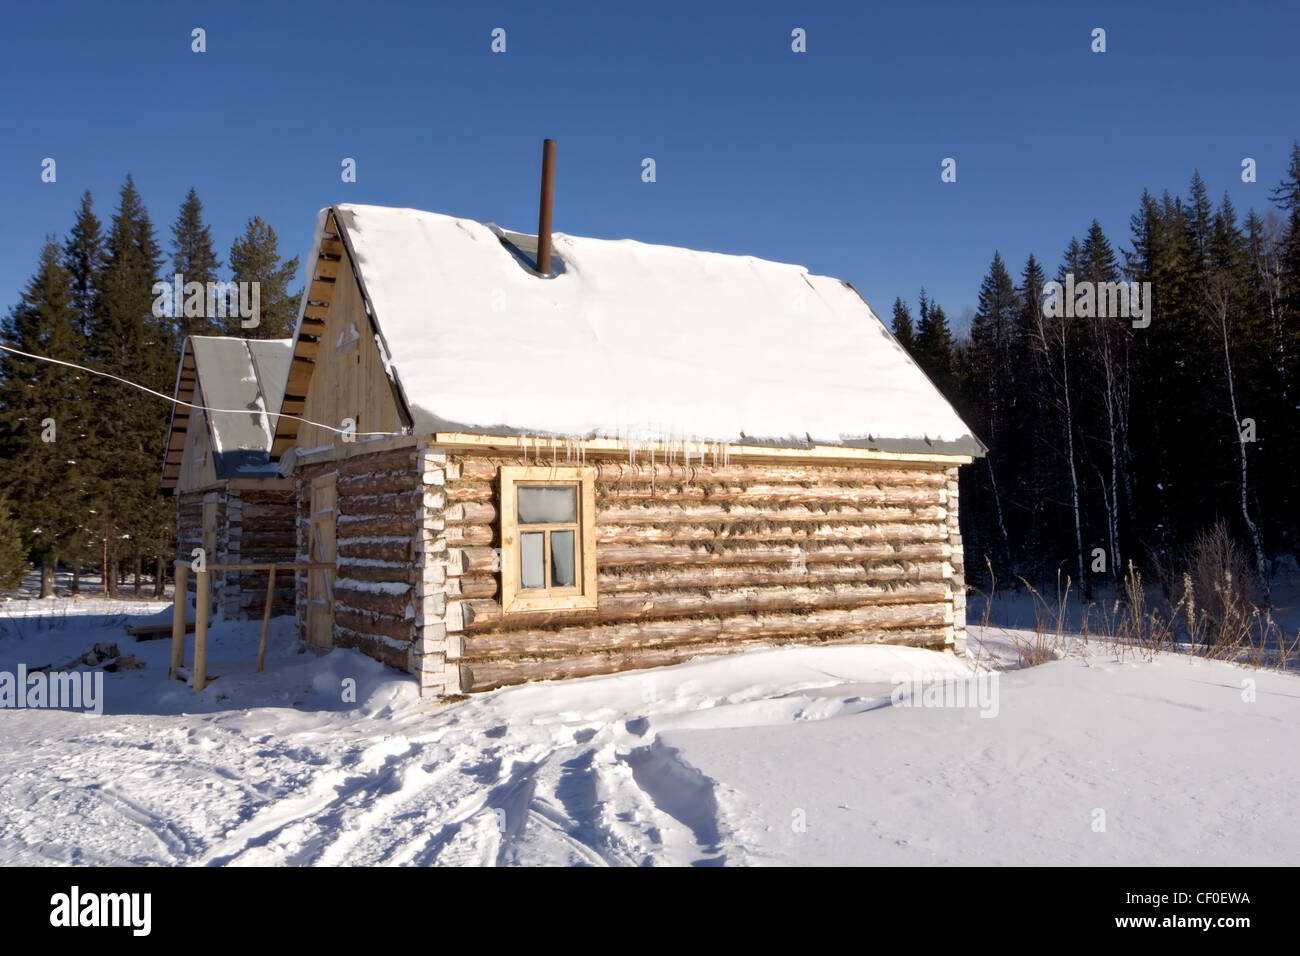 Cordon Kialimskiy. Winter huts for tourists in National park Taganay. South Ural mountains. Taiga. Russia. - Stock Image